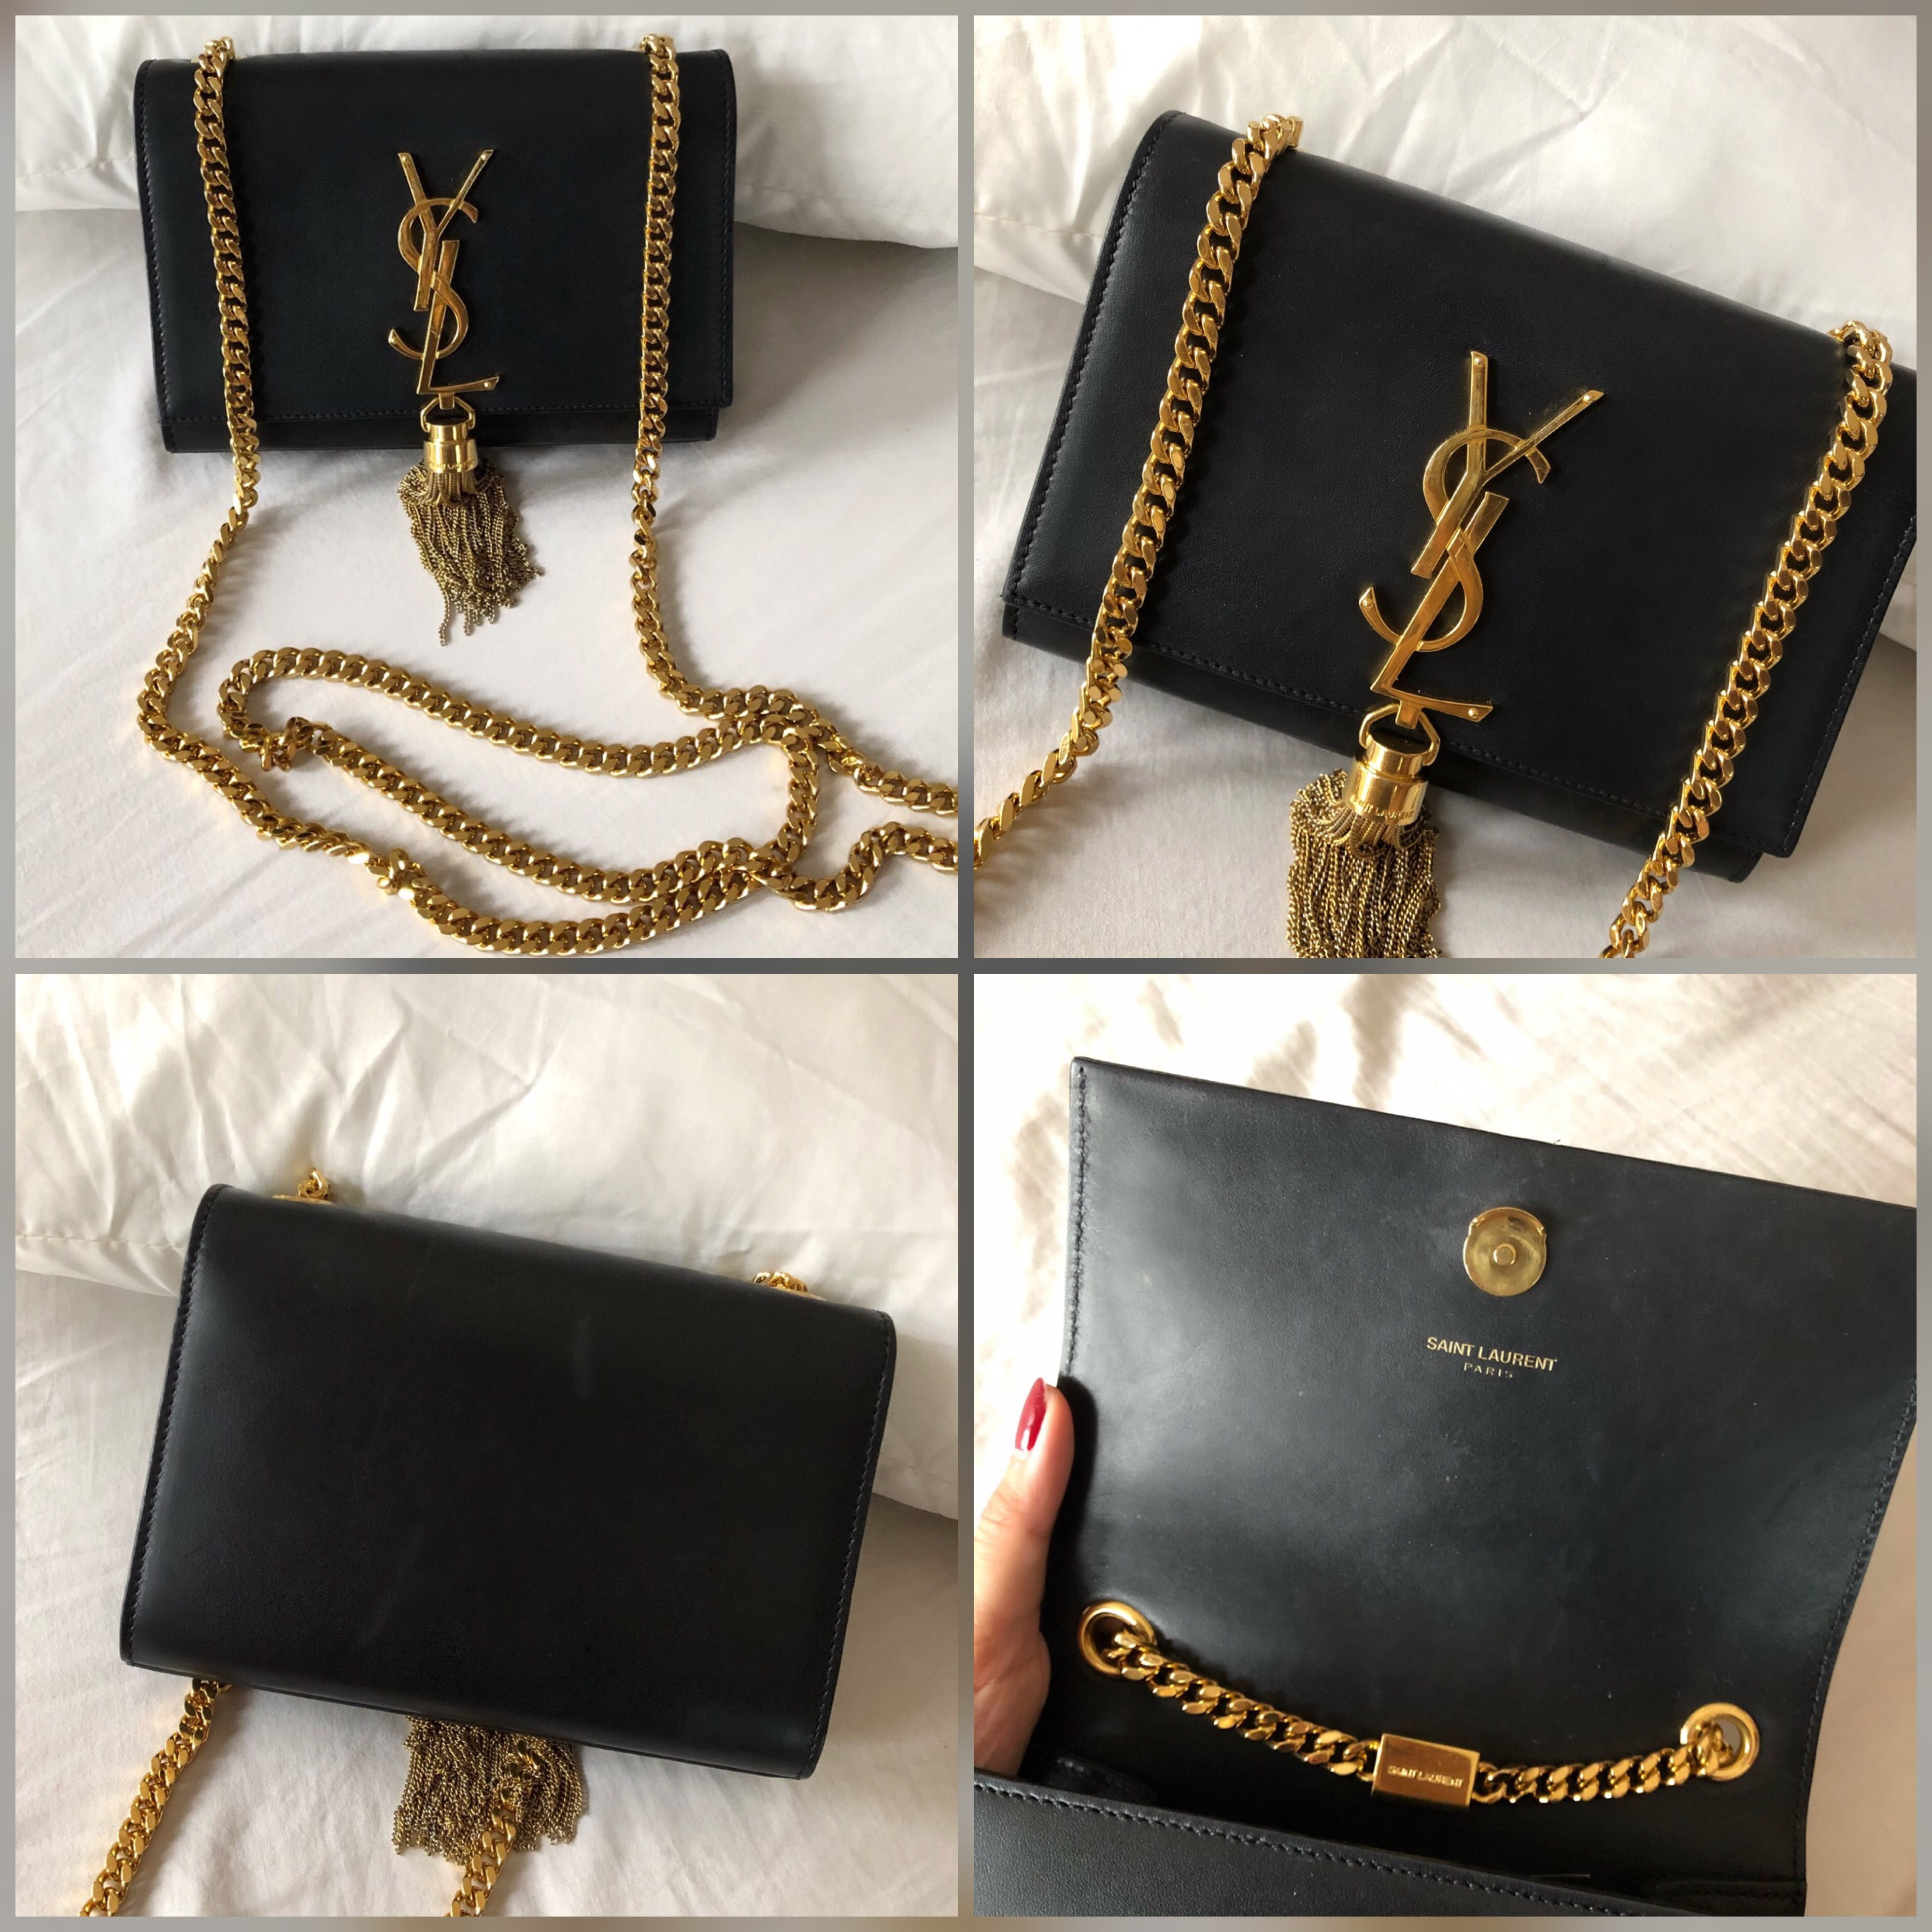 3aac1f542dc Saint Laurent Kate Tassel Small Smooth leather Bag only Good condition but  has signs of usage as per photos. Not for fussy buyers Selling Price :  SGD1330 ...